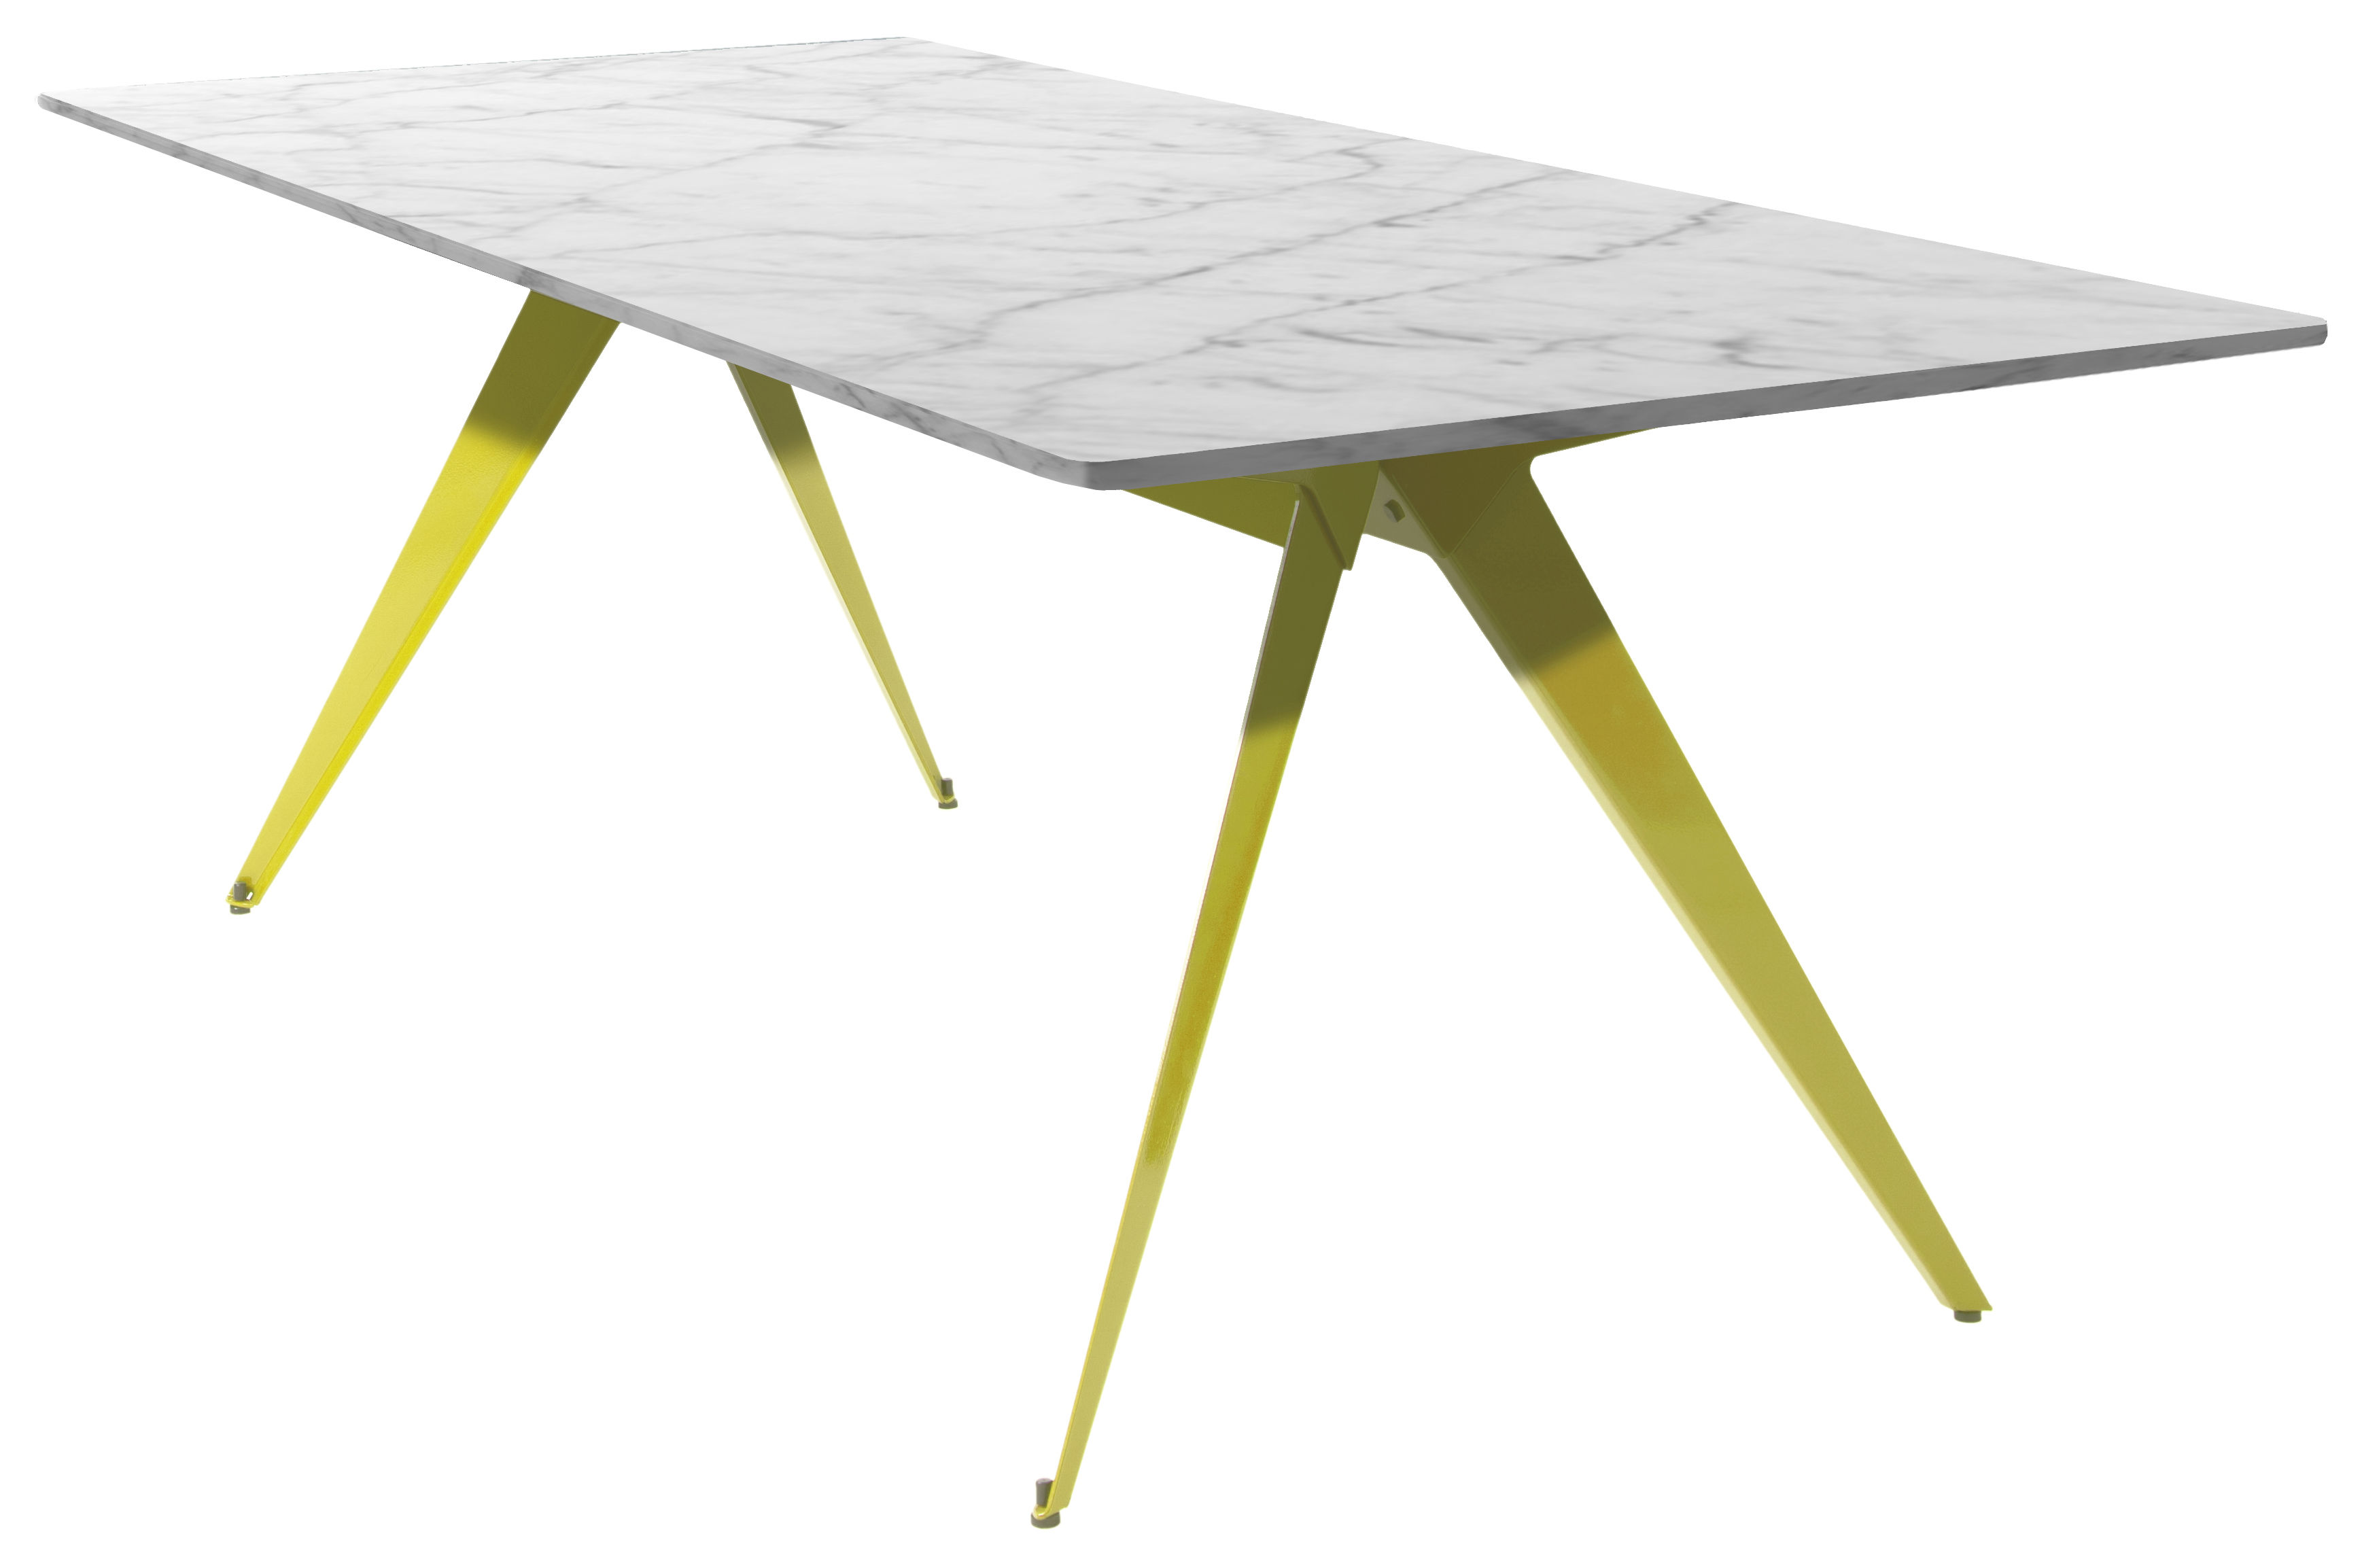 table stern marbre 220 x 90 cm pied jaune souffre. Black Bedroom Furniture Sets. Home Design Ideas